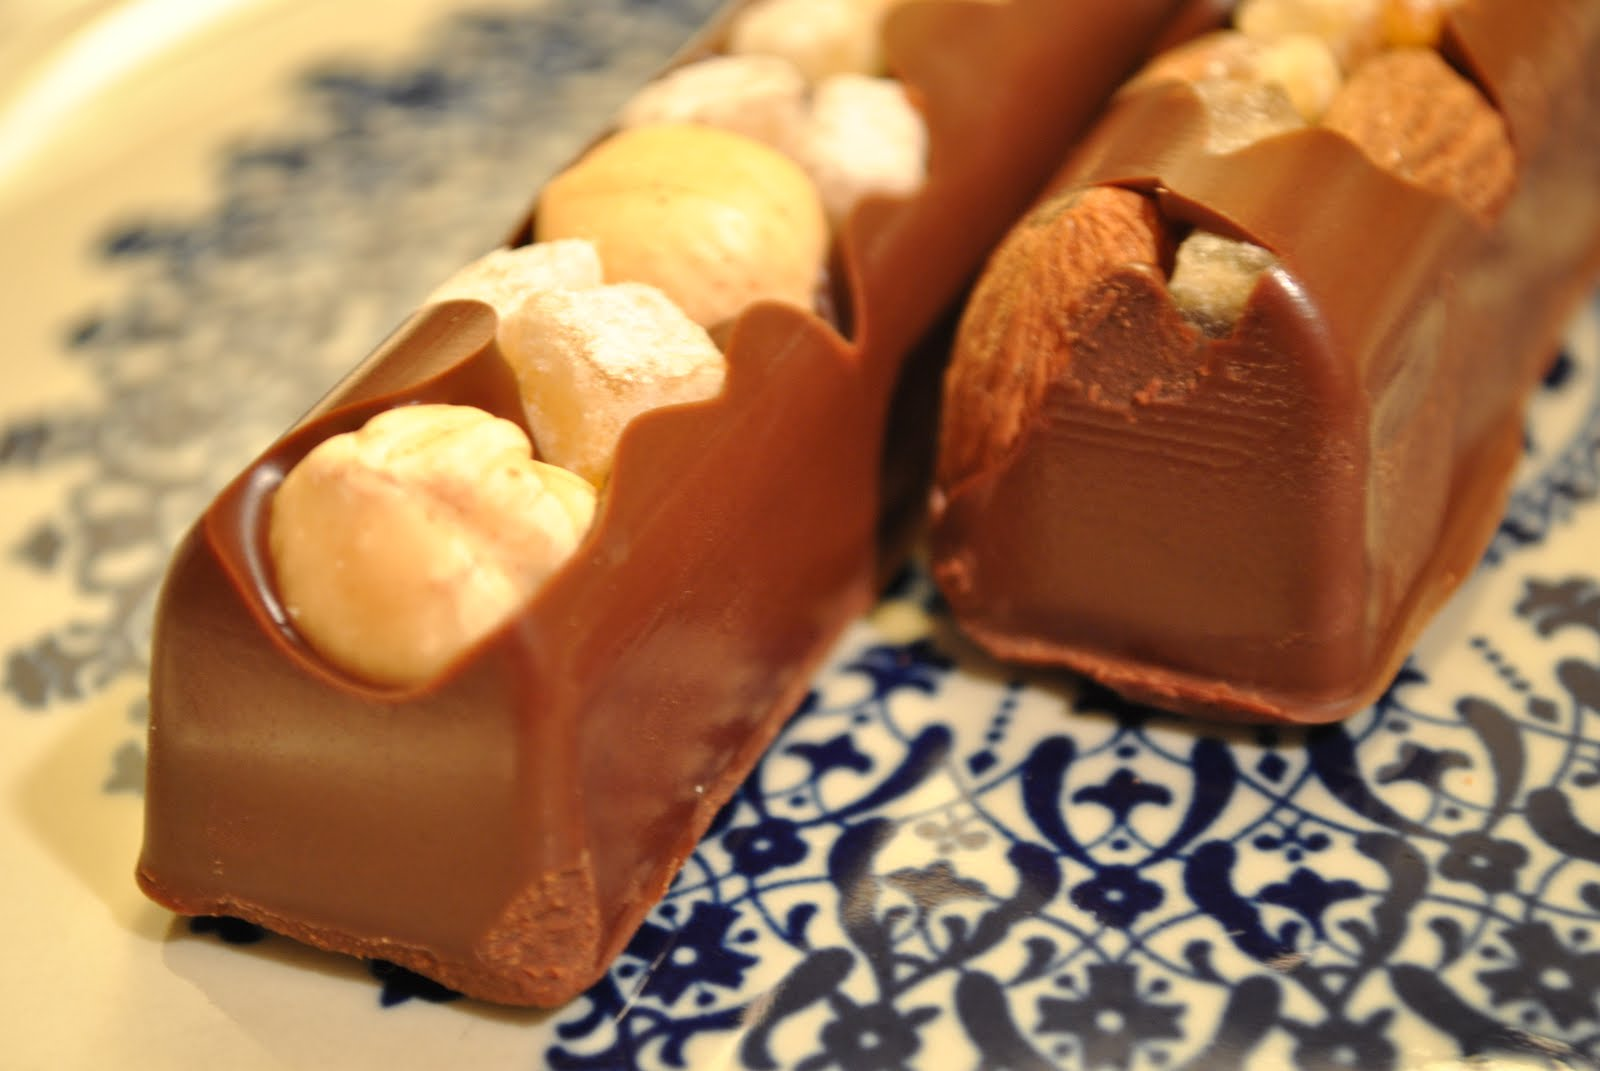 The gianduja base is fantastic. The bars are protected in their own molds,  and you can clearly see where the chocolate was poured in, sometimes to the  point ...